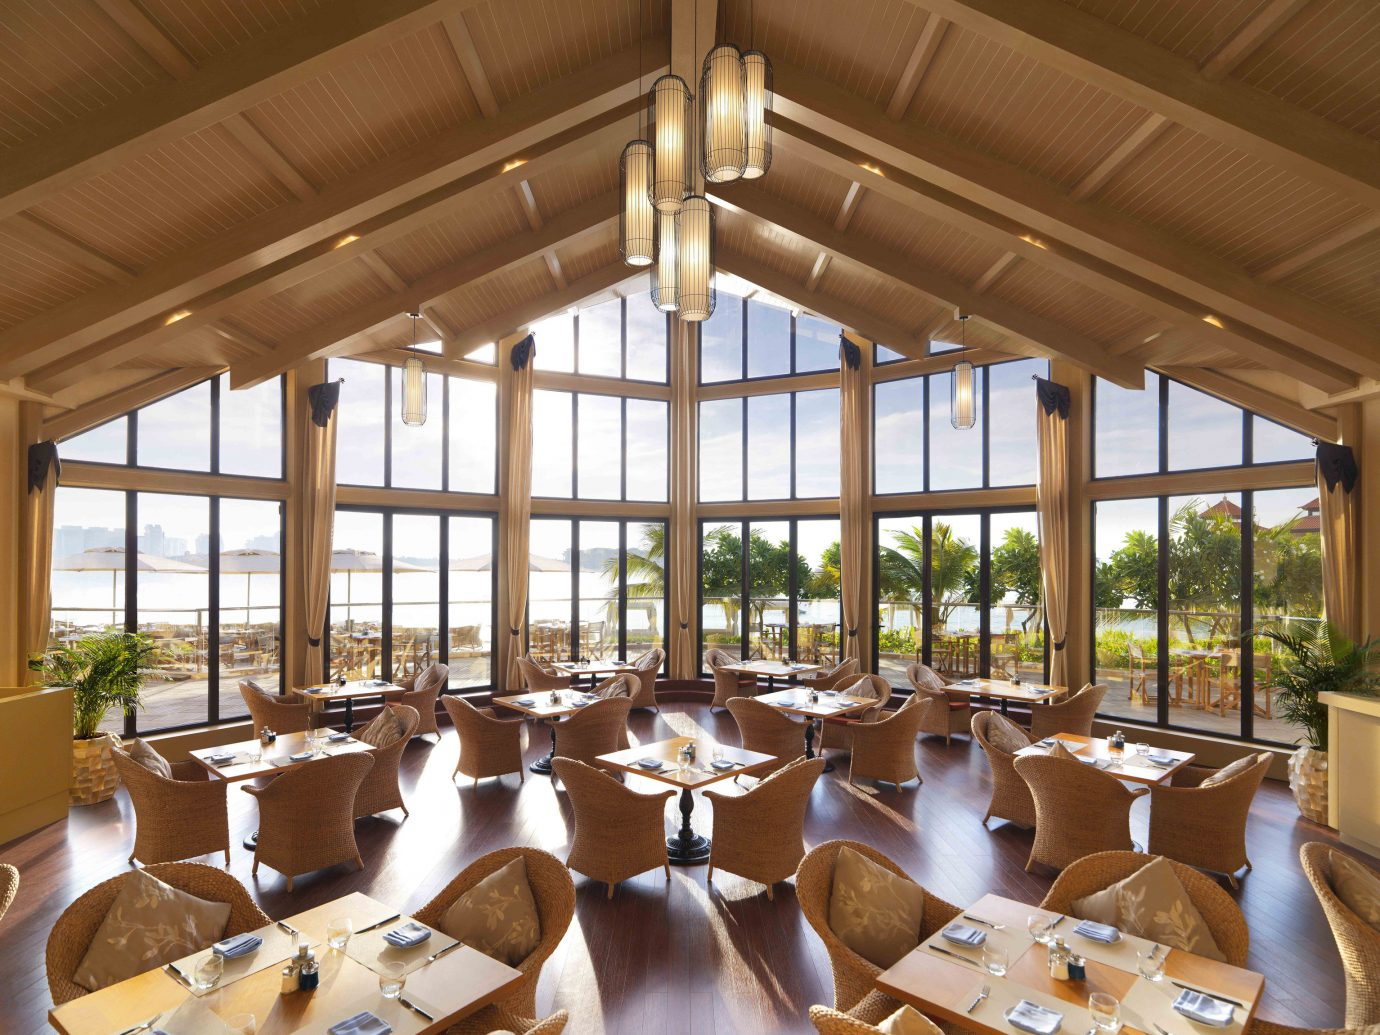 Dubai Hotels Luxury Travel Middle East indoor window ceiling restaurant interior design function hall daylighting table roof furniture several dining room